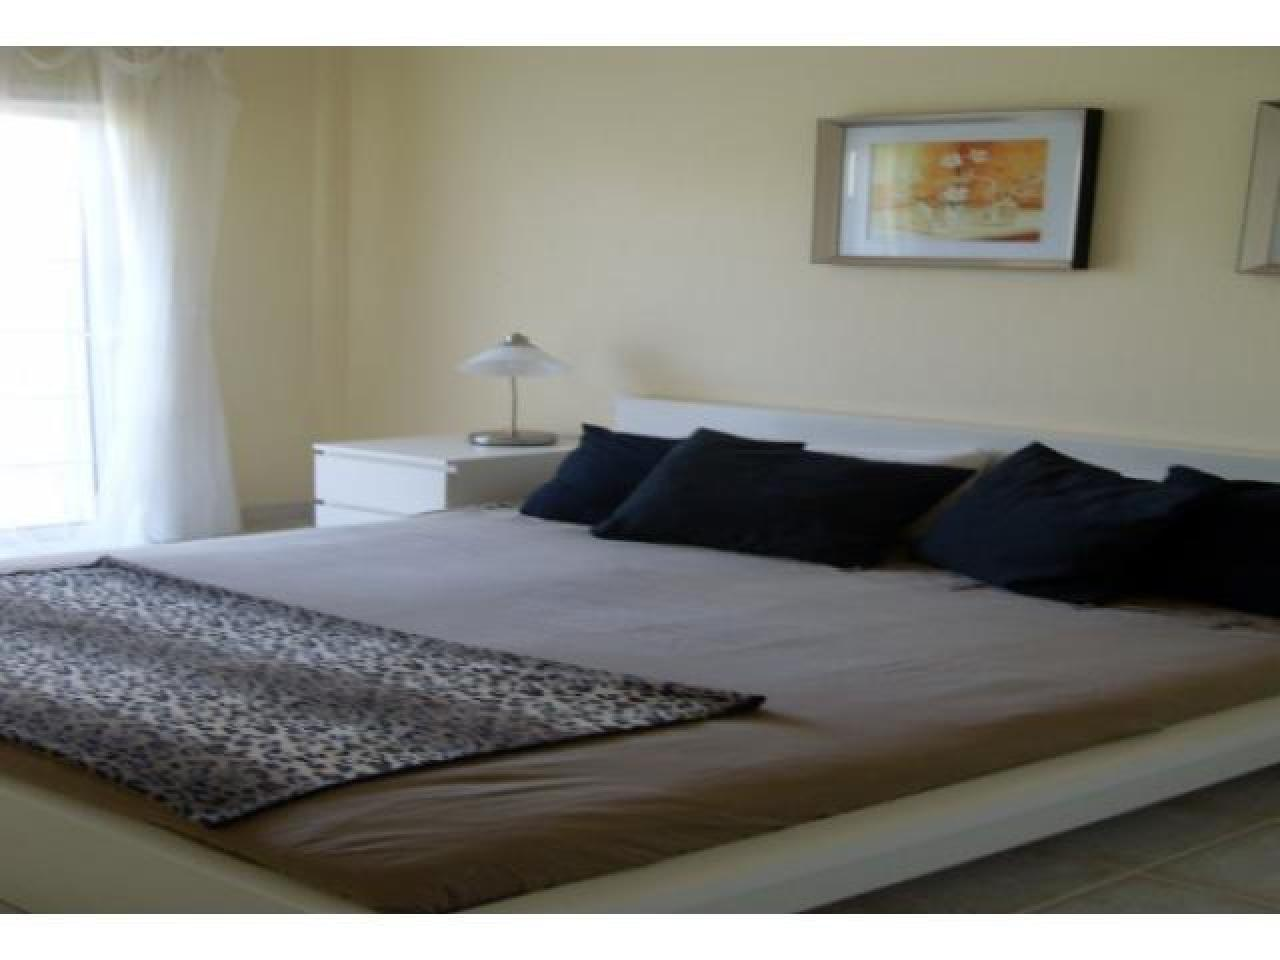 Real estate in Tenerife for sale » #141 - 5